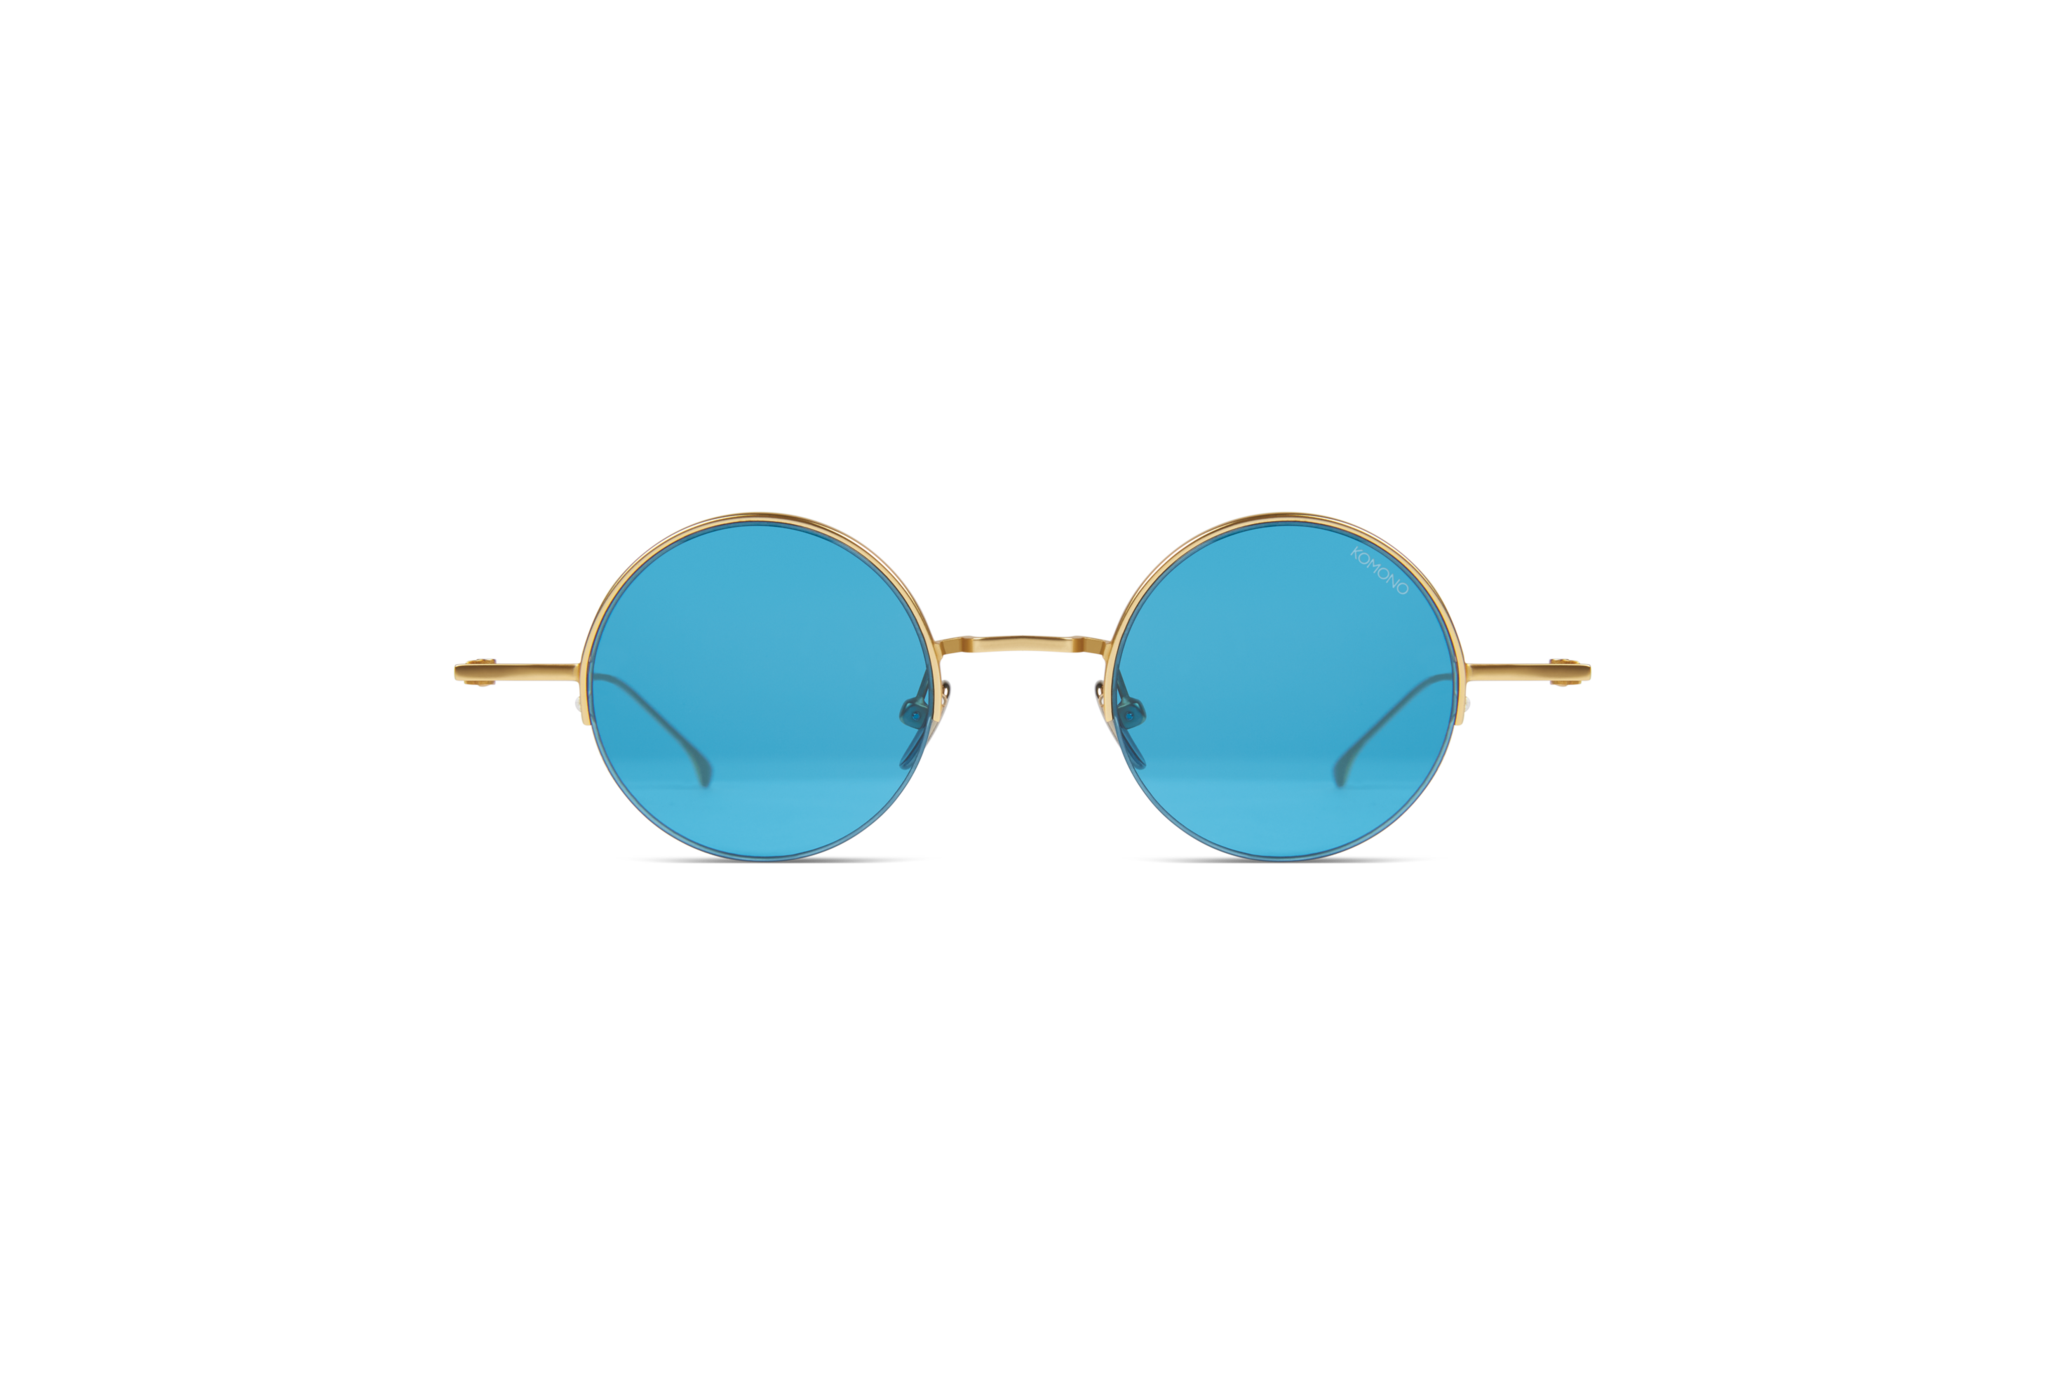 Komono - The Elton / $119The easiest way to make a boring outfit cool is by adding fun, tinted, tiny sunglasses!